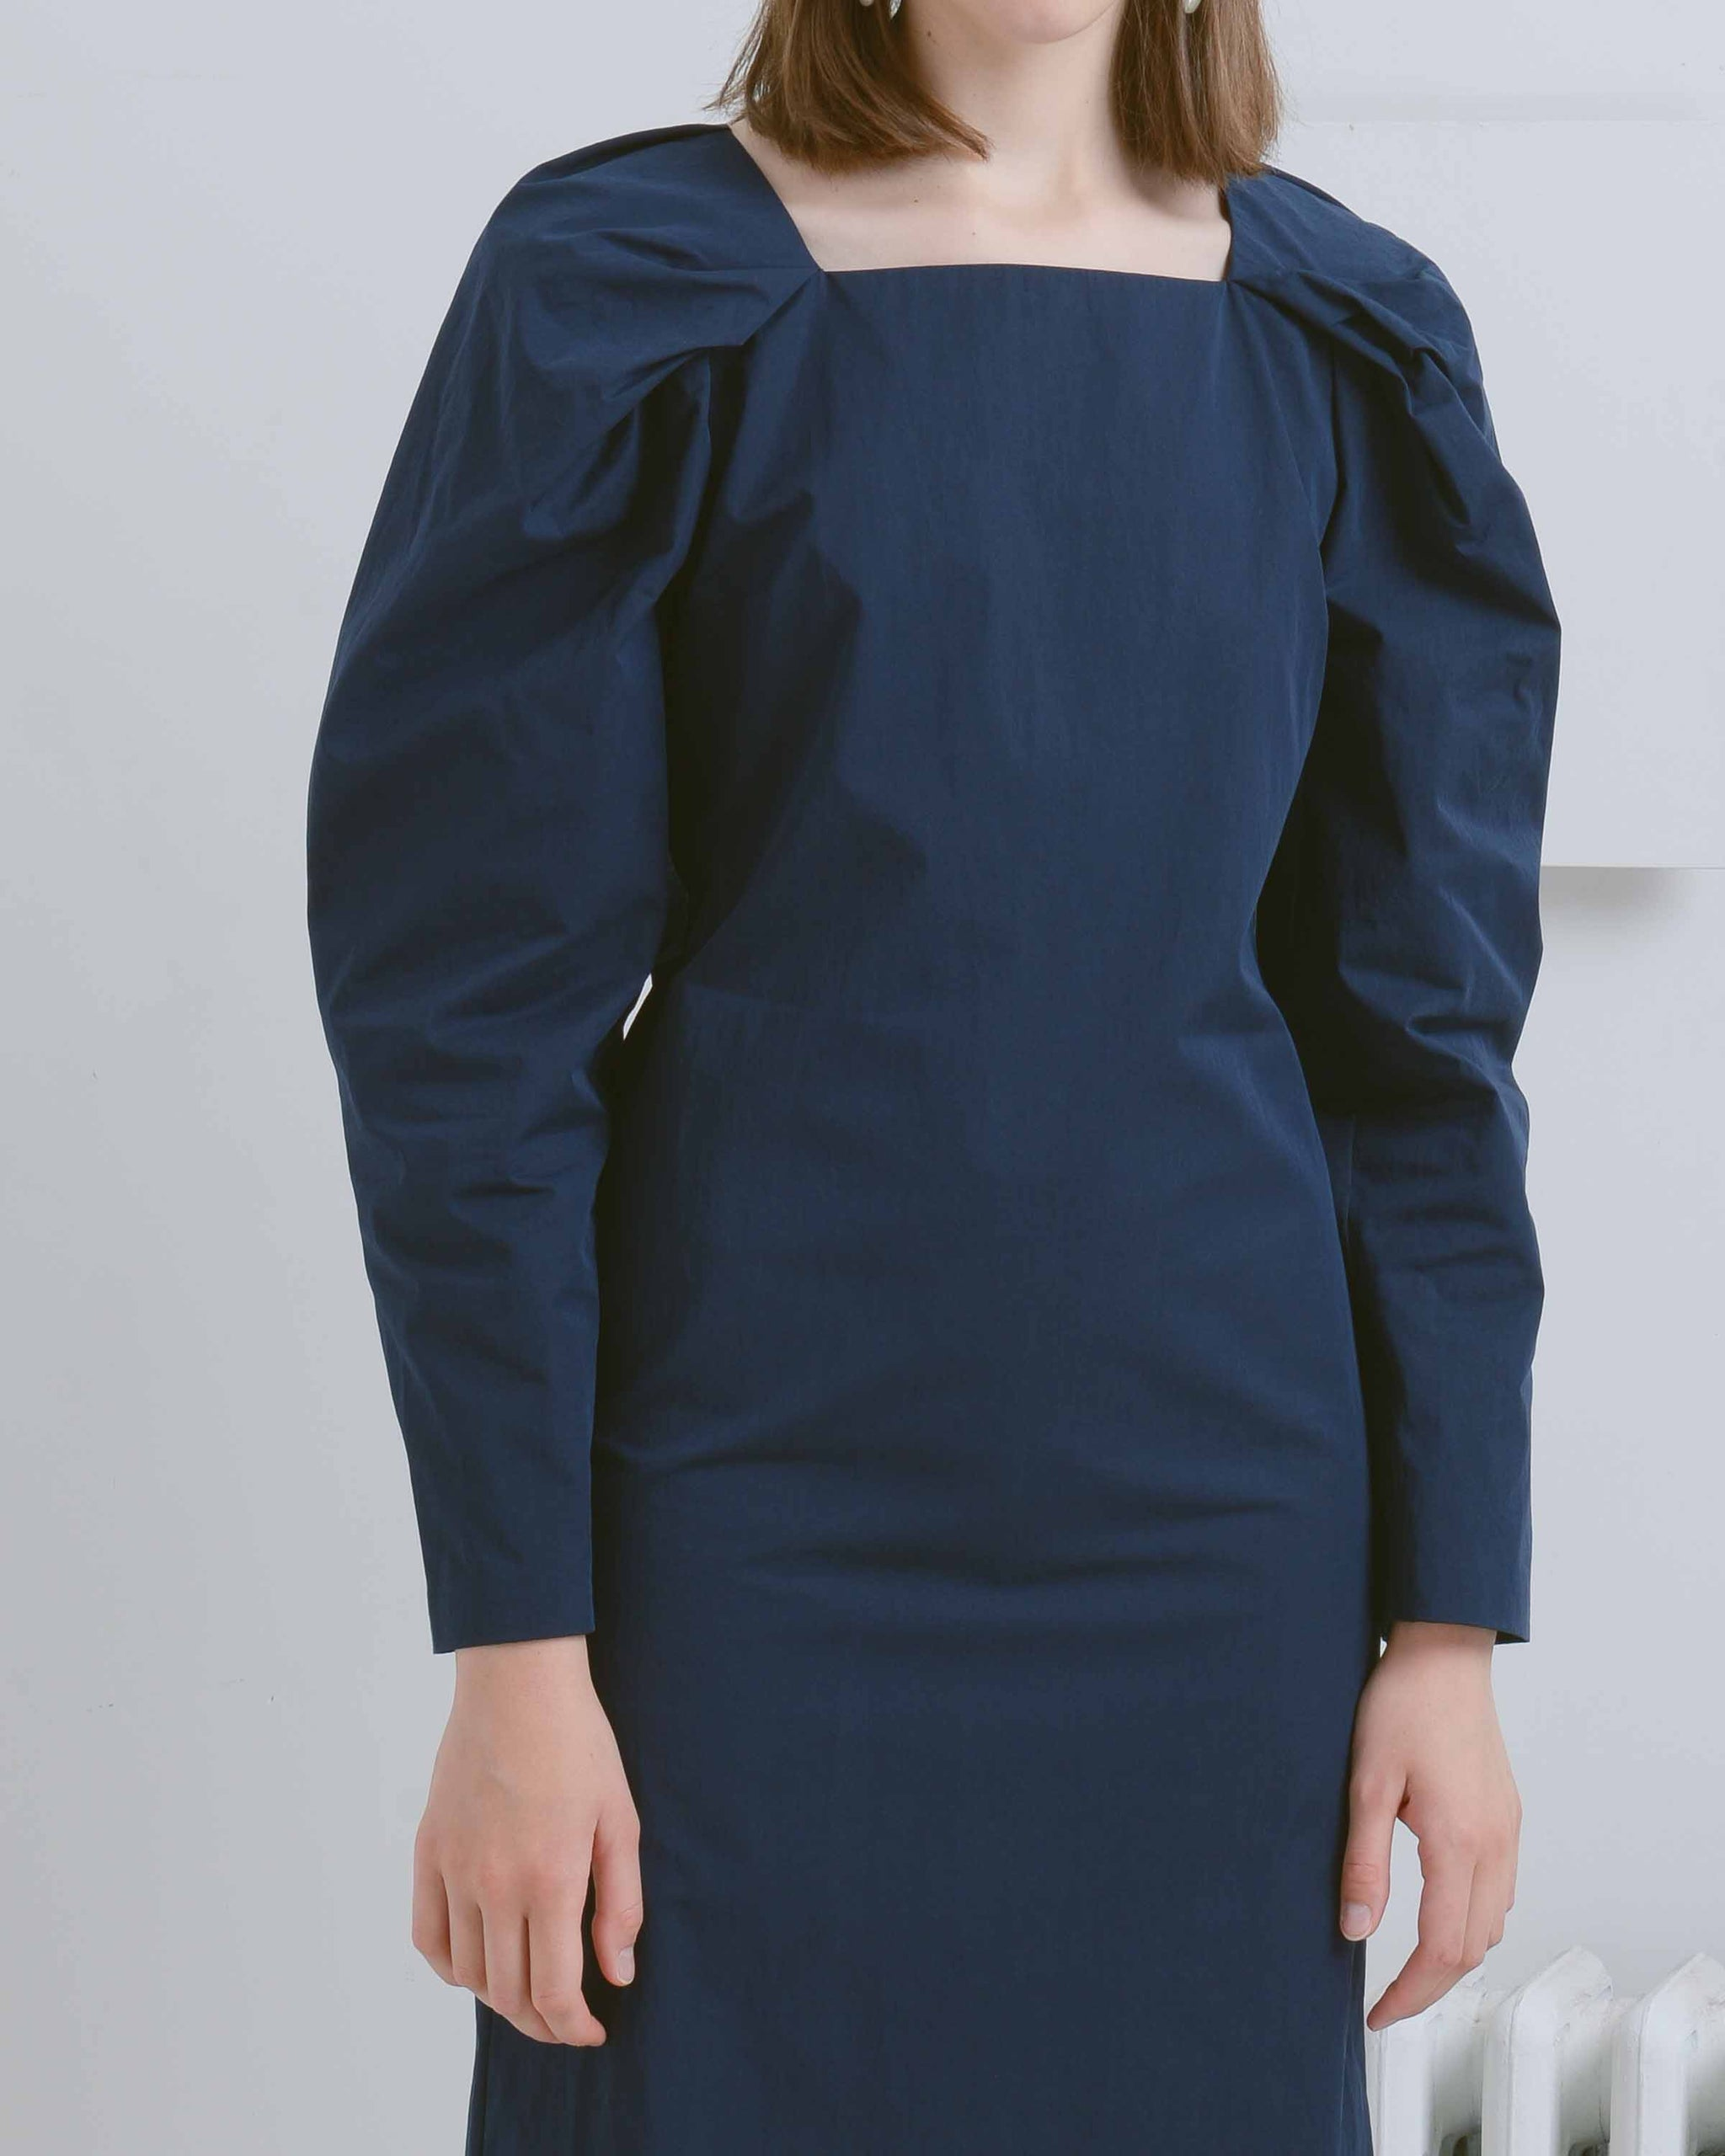 Mignon Sleeve Dress